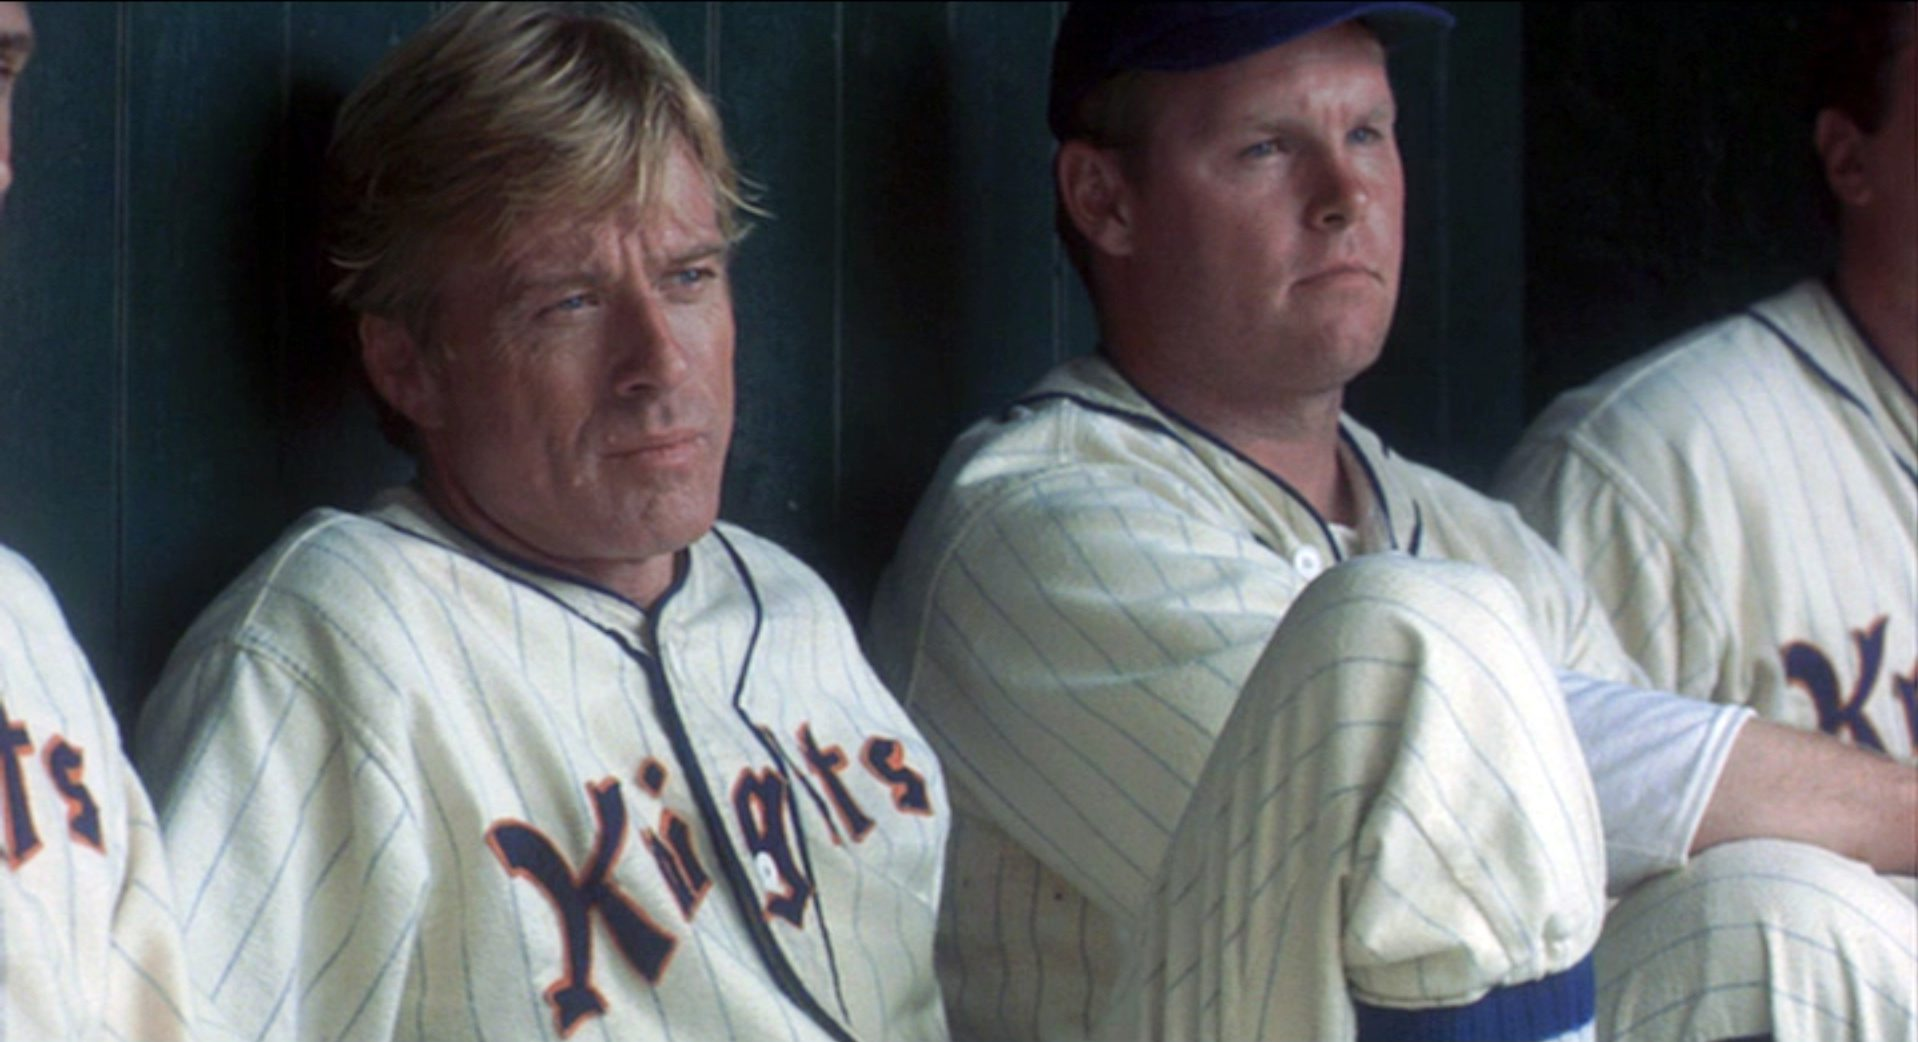 Robert Redford and Duke McGuire (right) in The Natural.